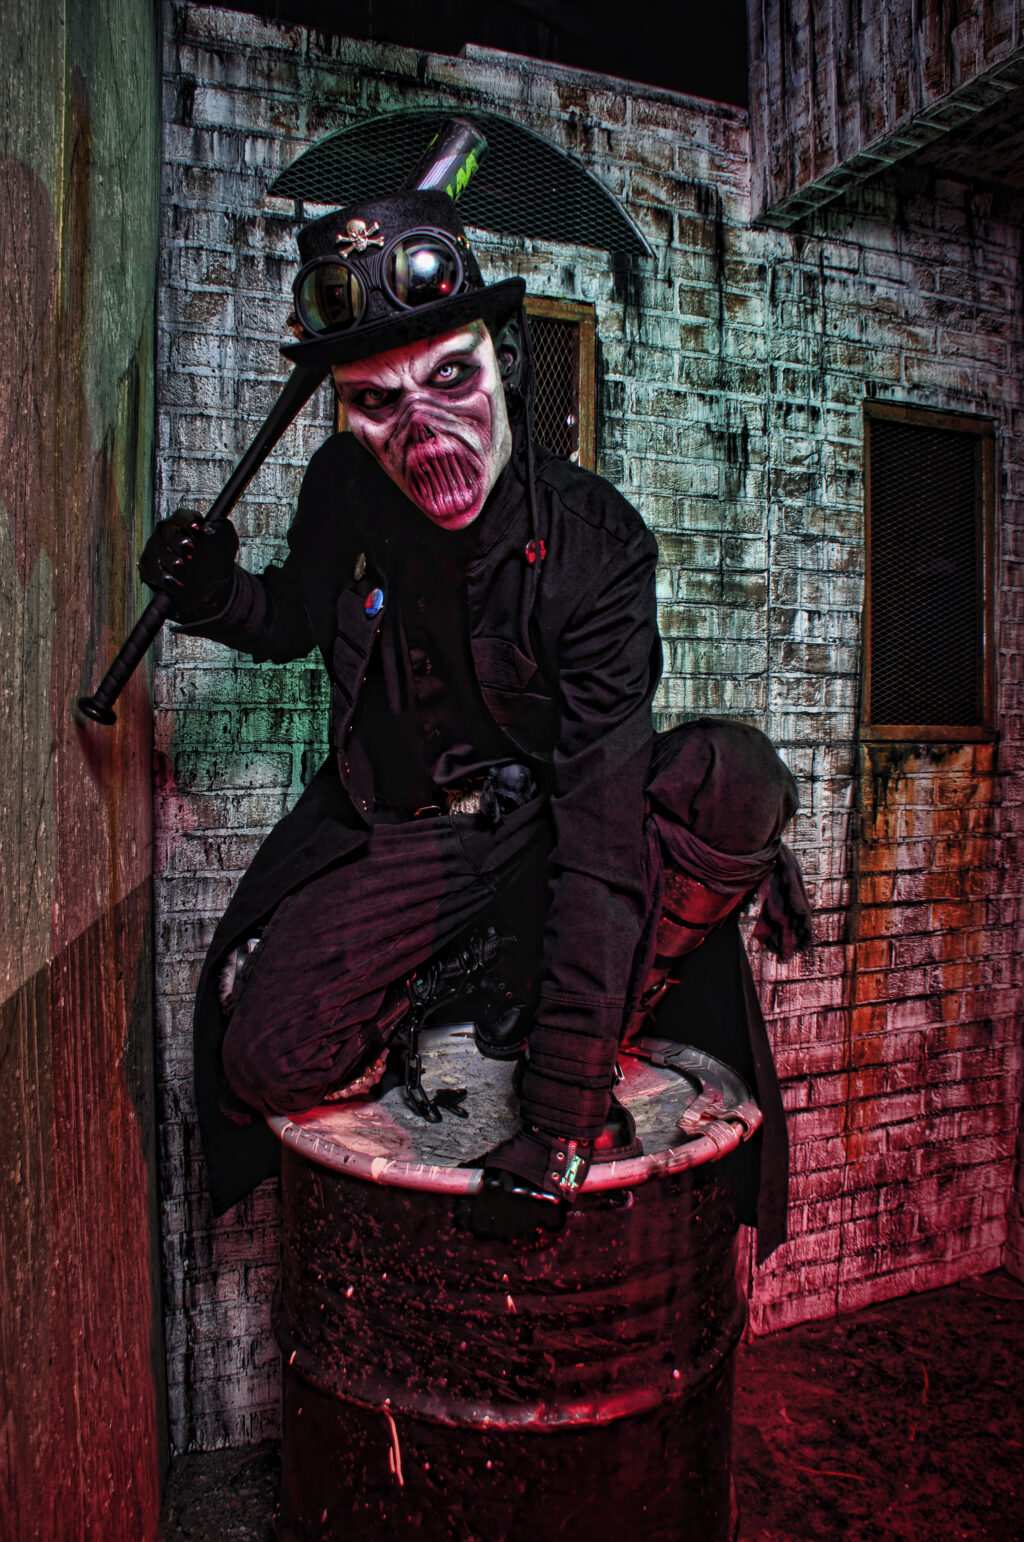 Doom 1024x1542 - Trailer: Nevada's Largest In-Door Halloween Attraction FRIGHT DOME to Open Its Doors This October for FRIGHT RIDE